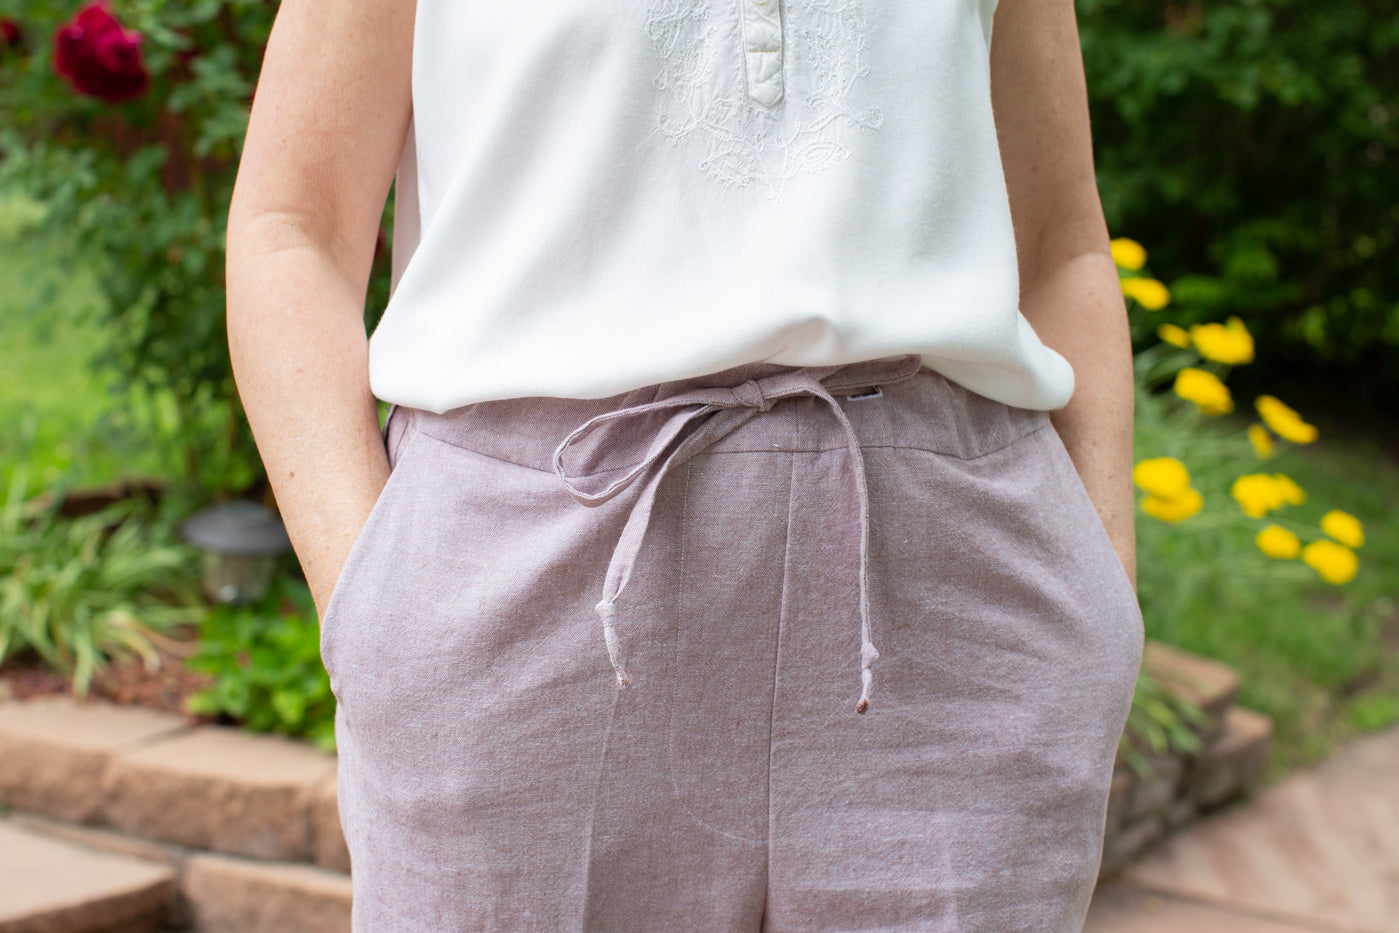 Up close detail photograph of women in mocha essex fabric to show the pocket of the pants.